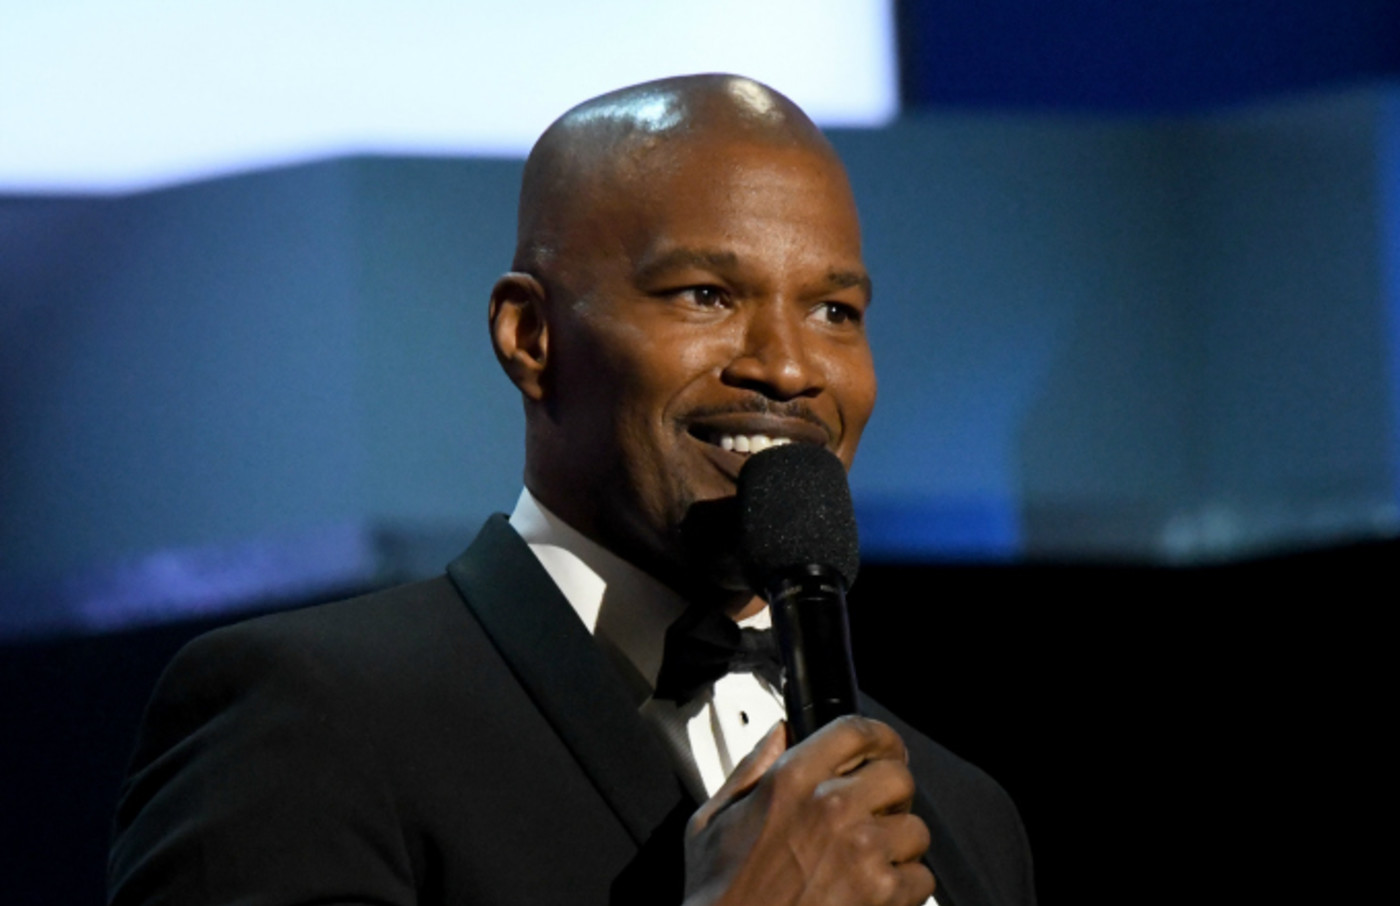 Jamie Foxx speaks onstage at the 47th AFI Life Achievement Award